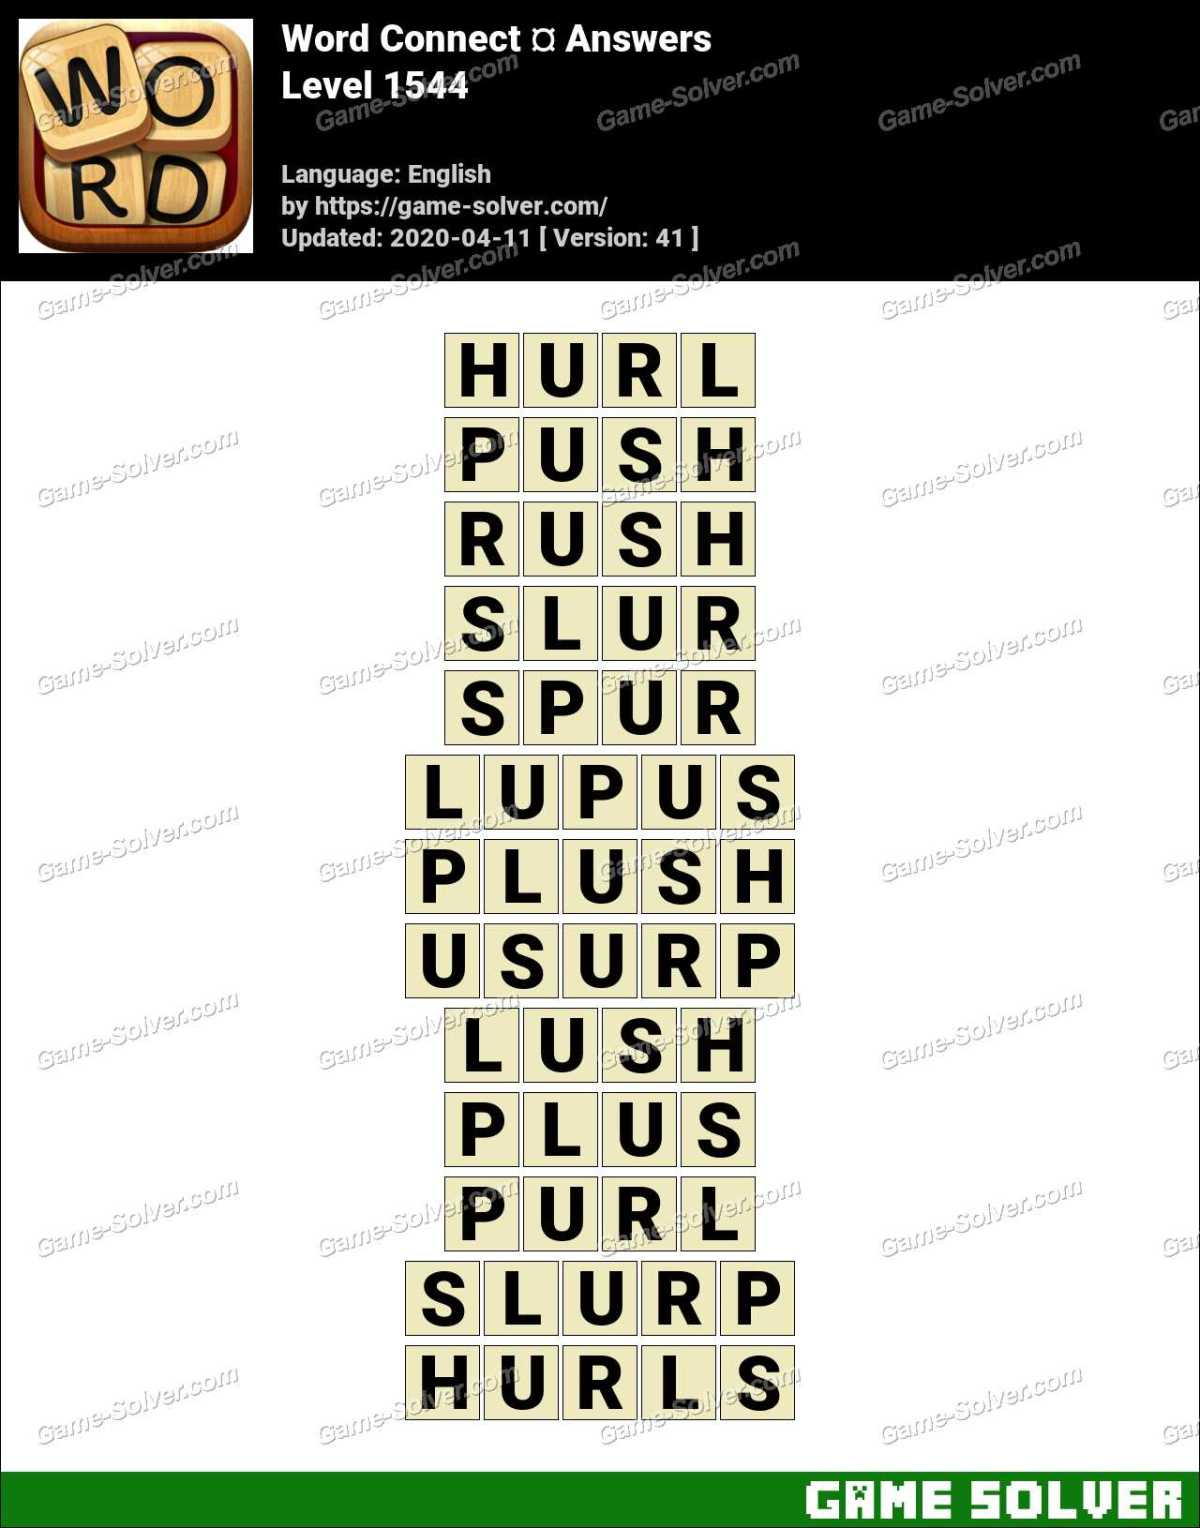 Word Connect Level 1544 Answers